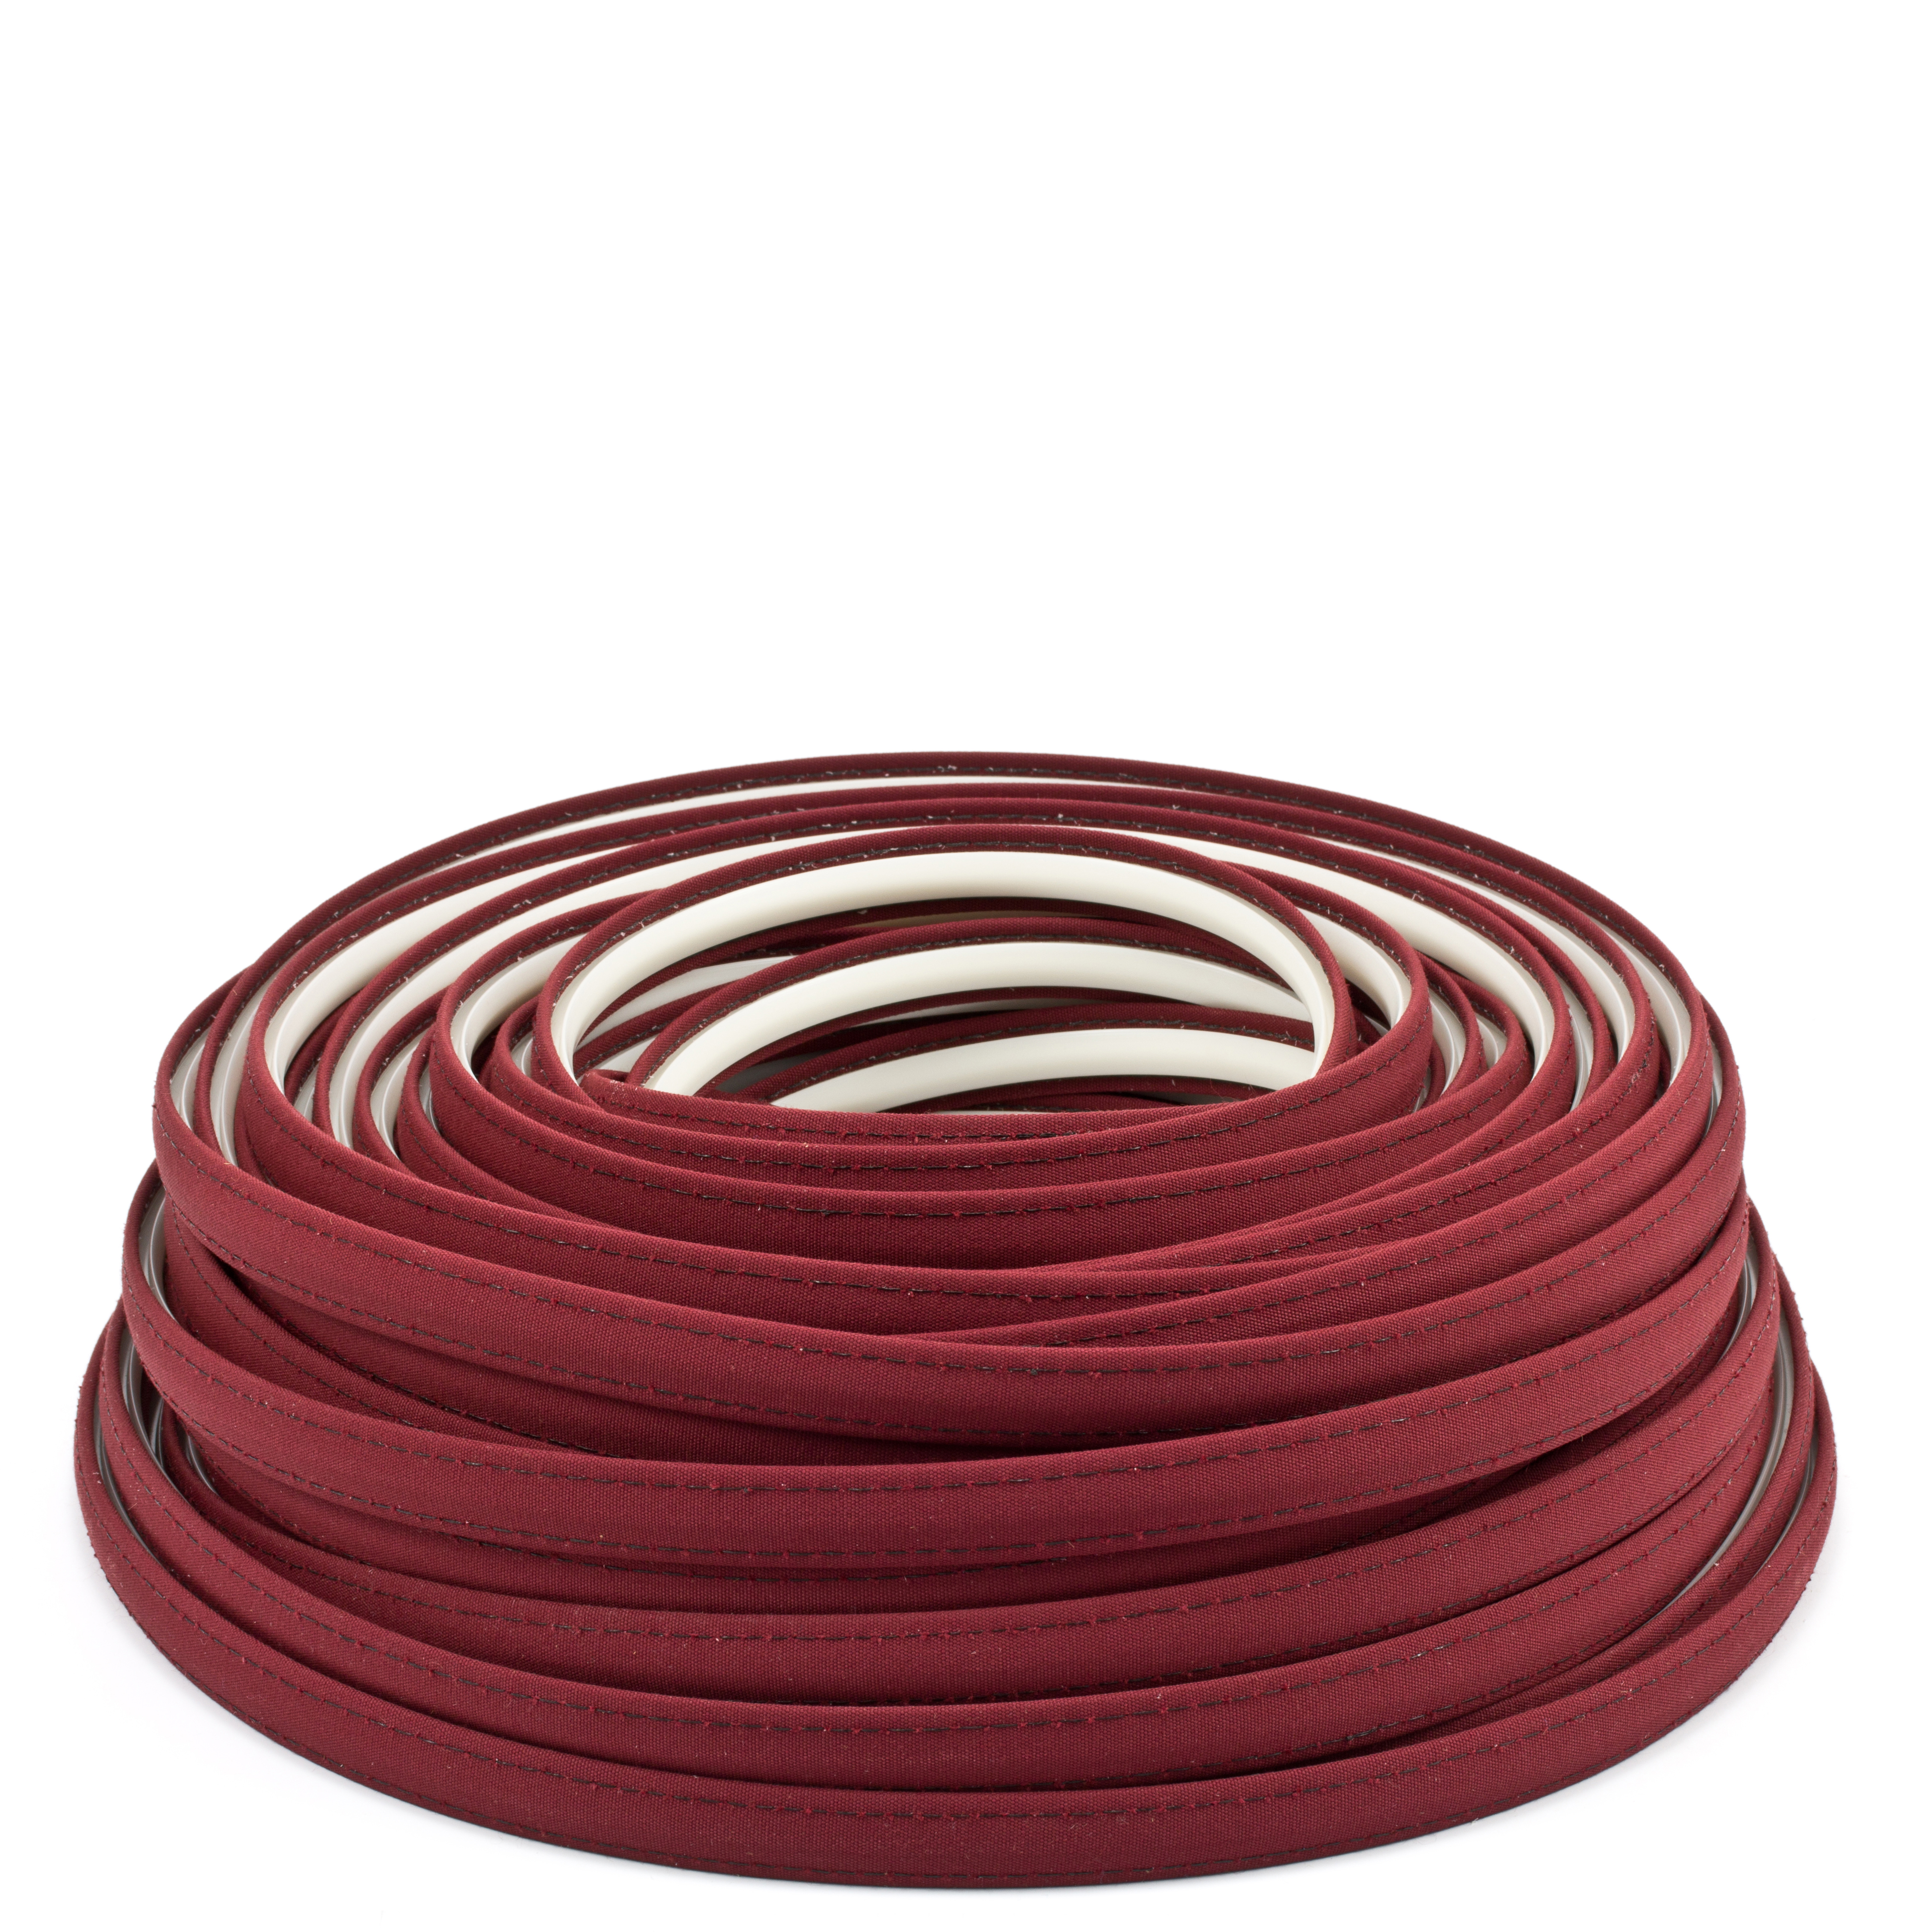 Thumbnail Steel Stitch Sunbrella Covered ZipStrip with Tenara Thread #4631 Burgundy 160' Full Rolls Only 0